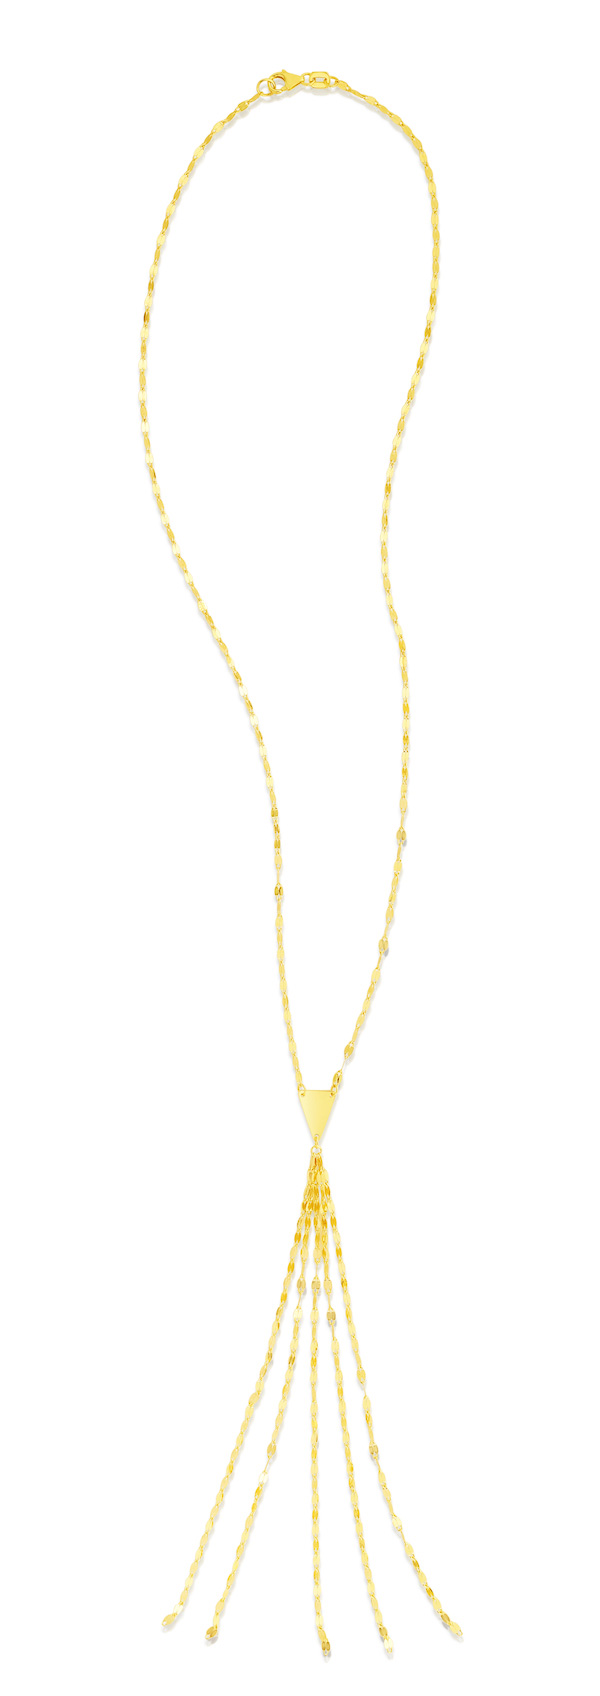 Royal Chain flapper necklace